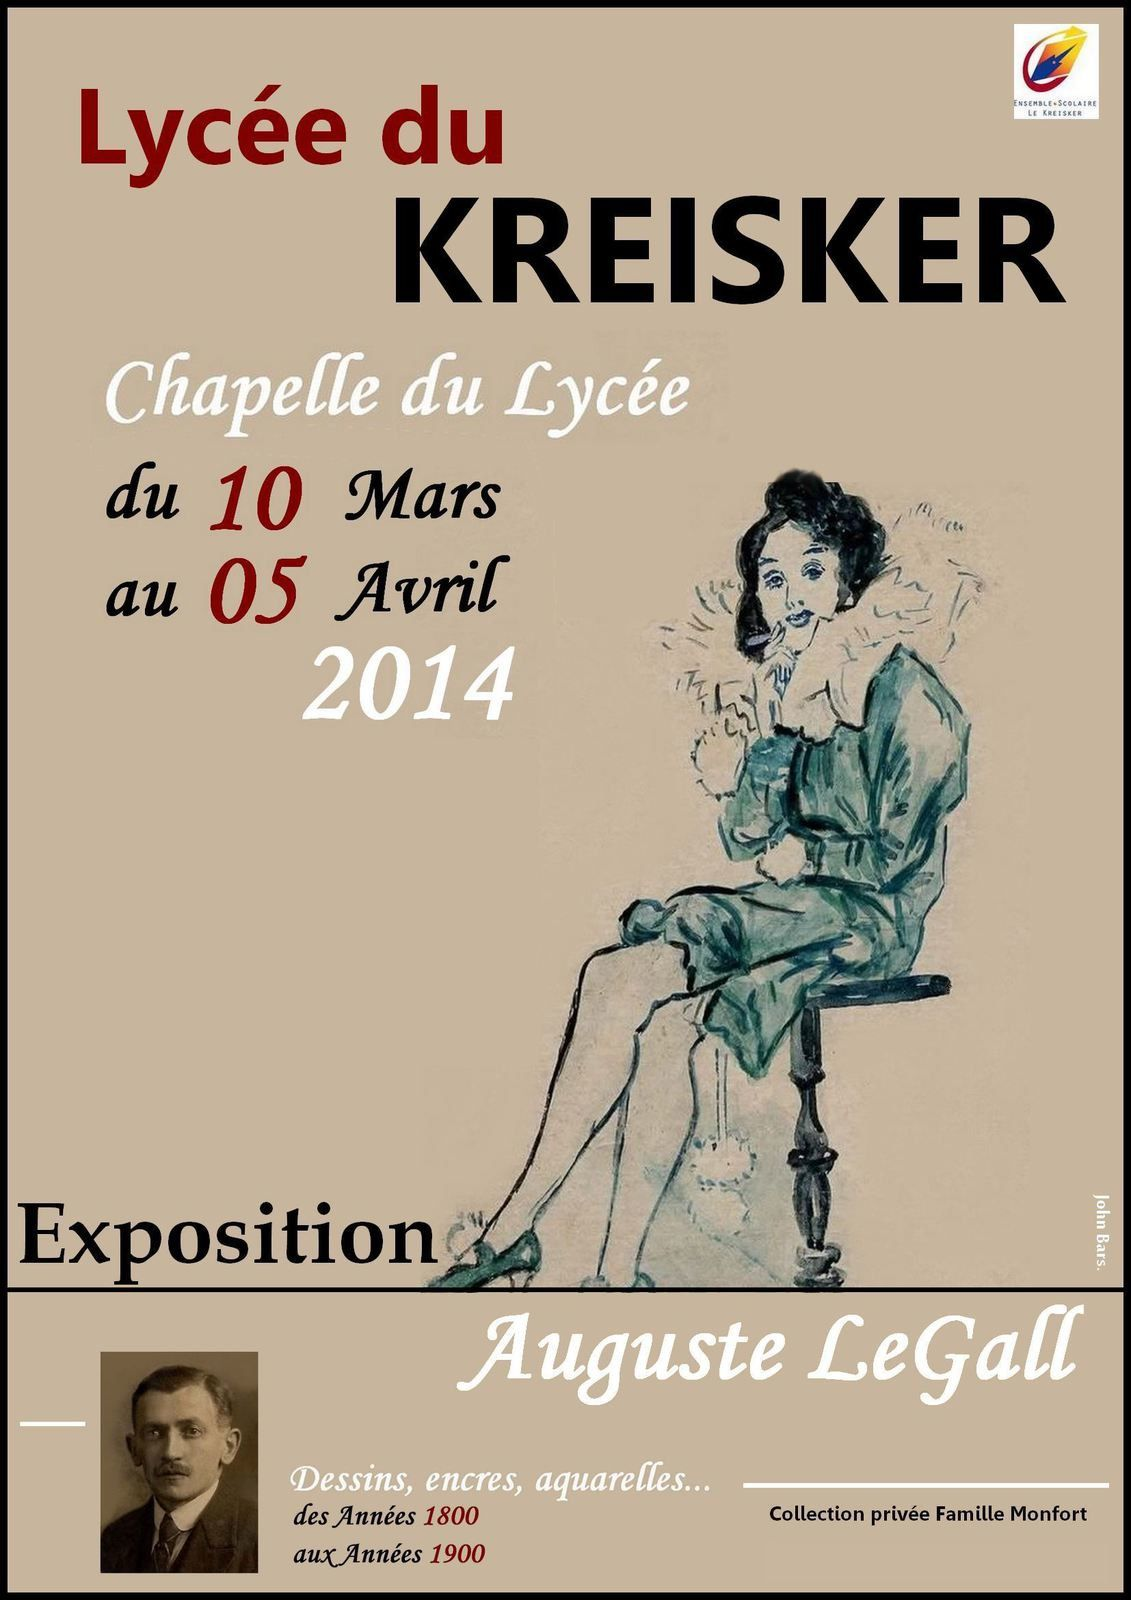 Exposition Auguste LeGall